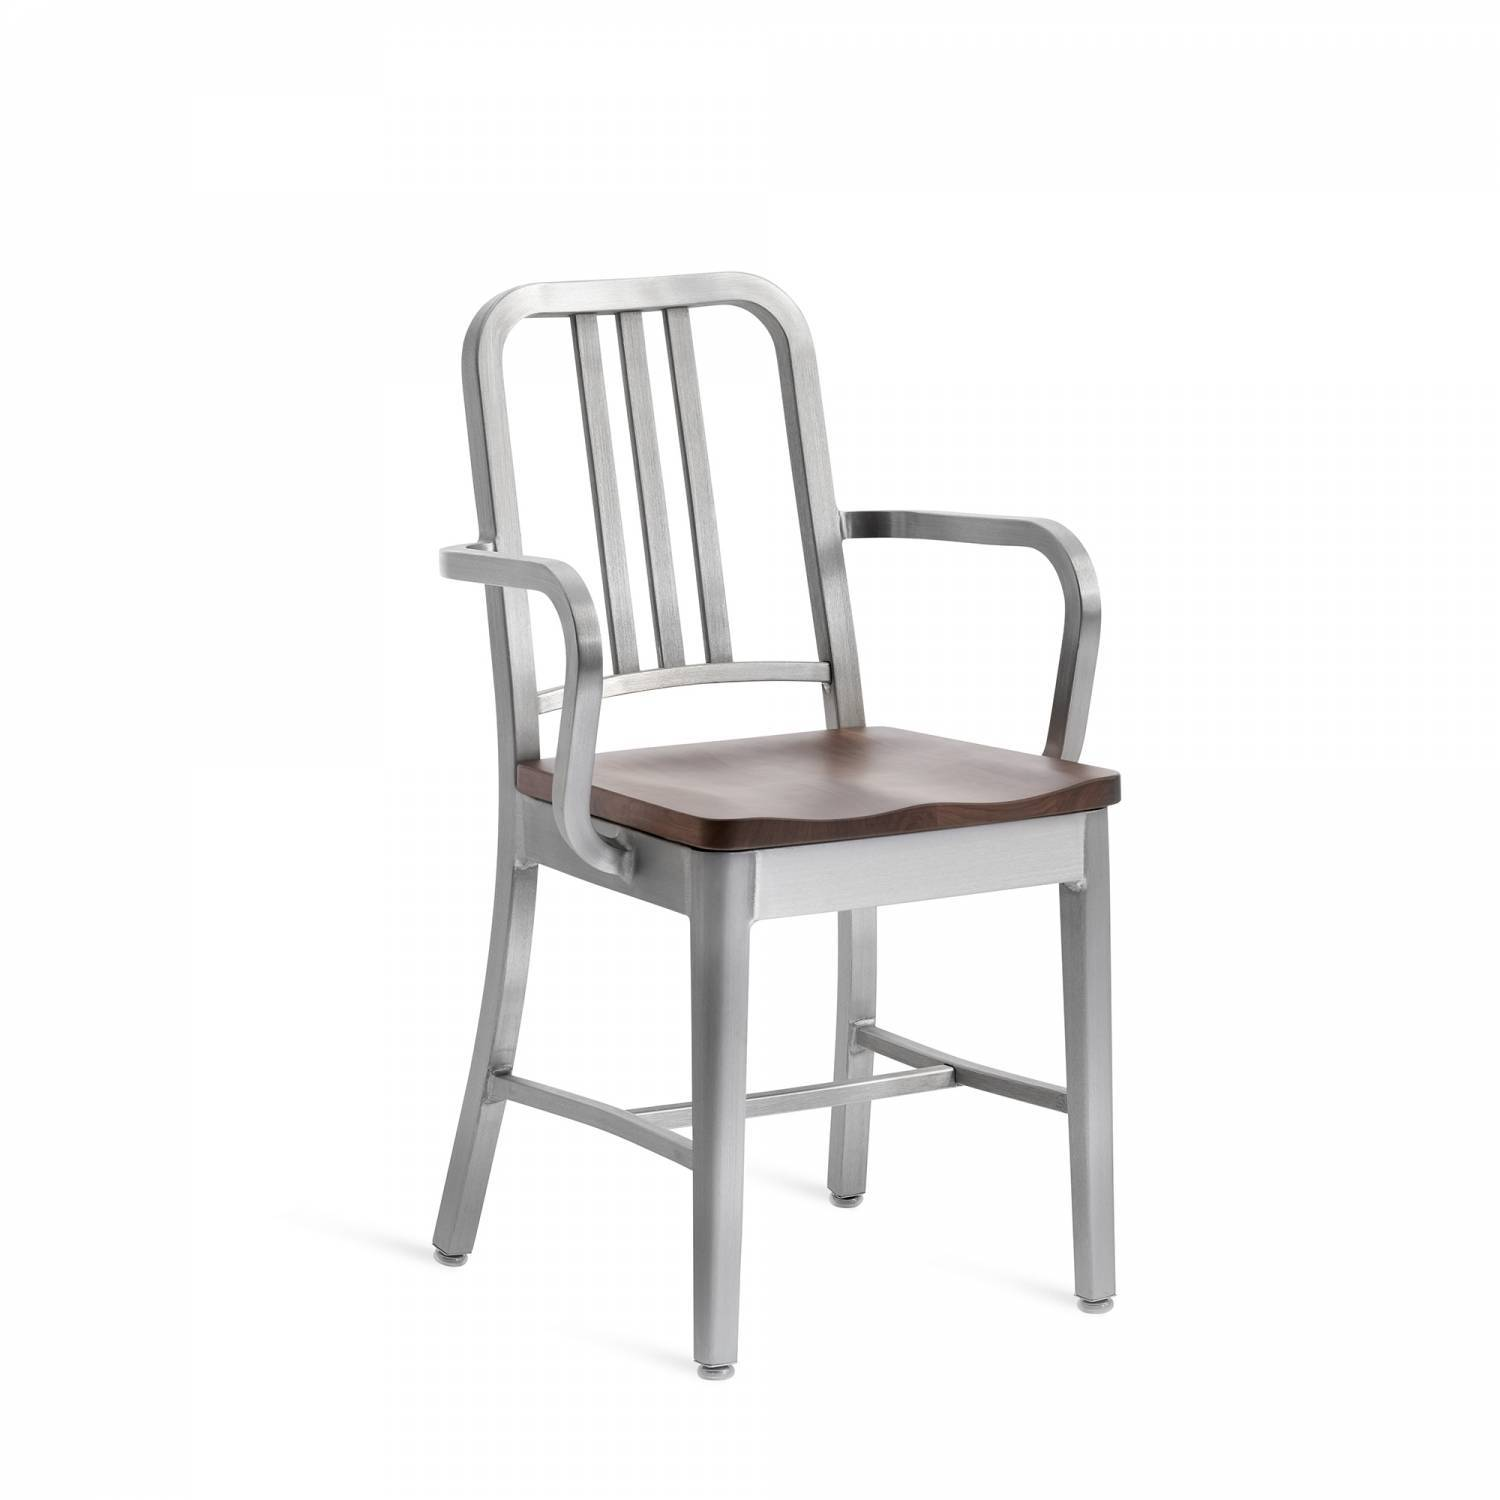 Emeco Navy Arm Chair With Wood Seat